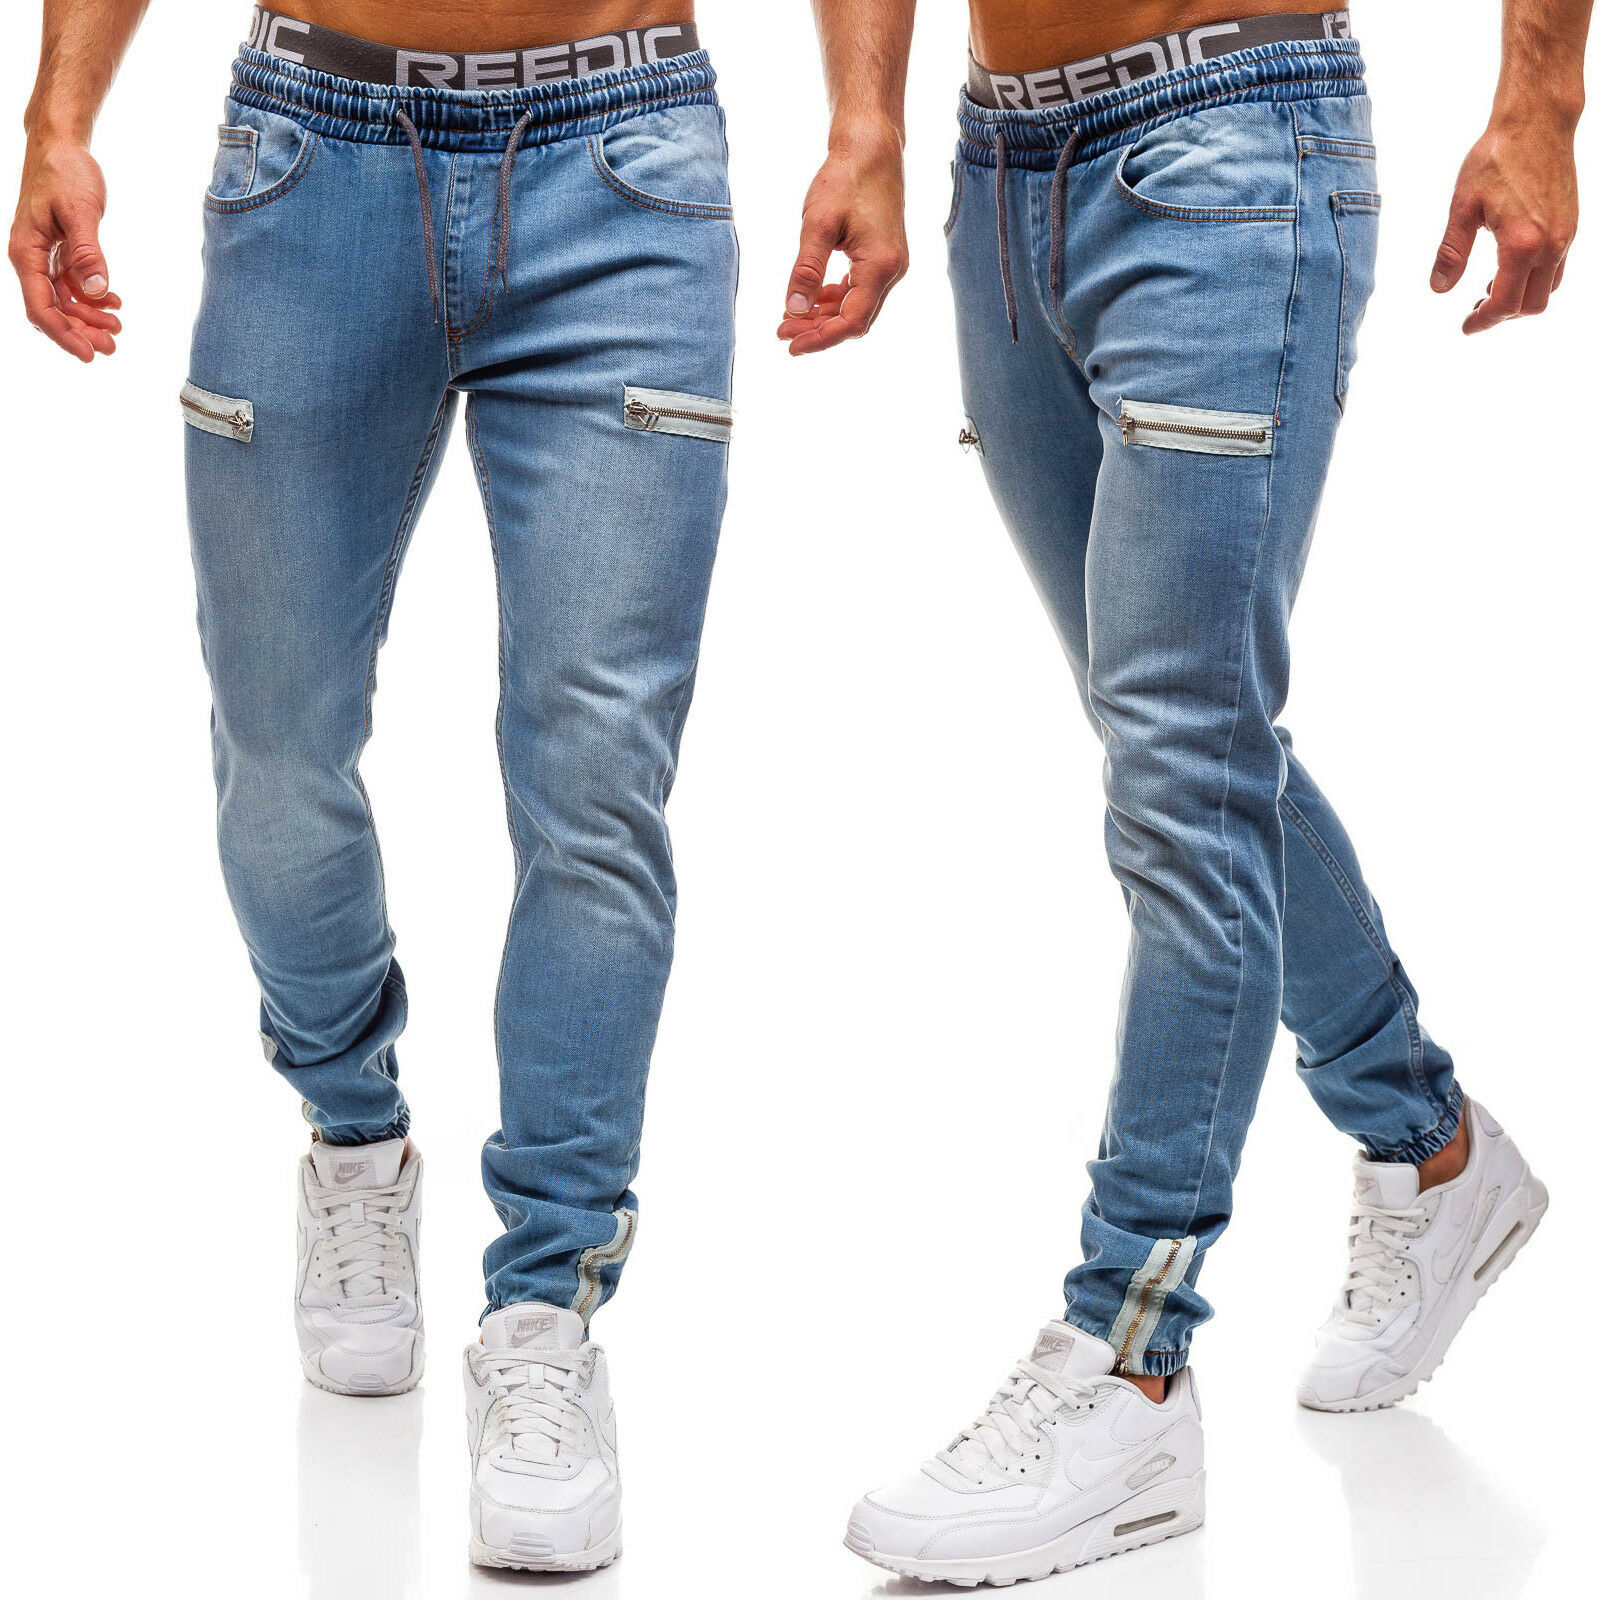 MEN'S WEAR 2019 Men's Autumn New Style Europe And America Cowboy Zipper Solid Color Sports Jeans Fashion Man